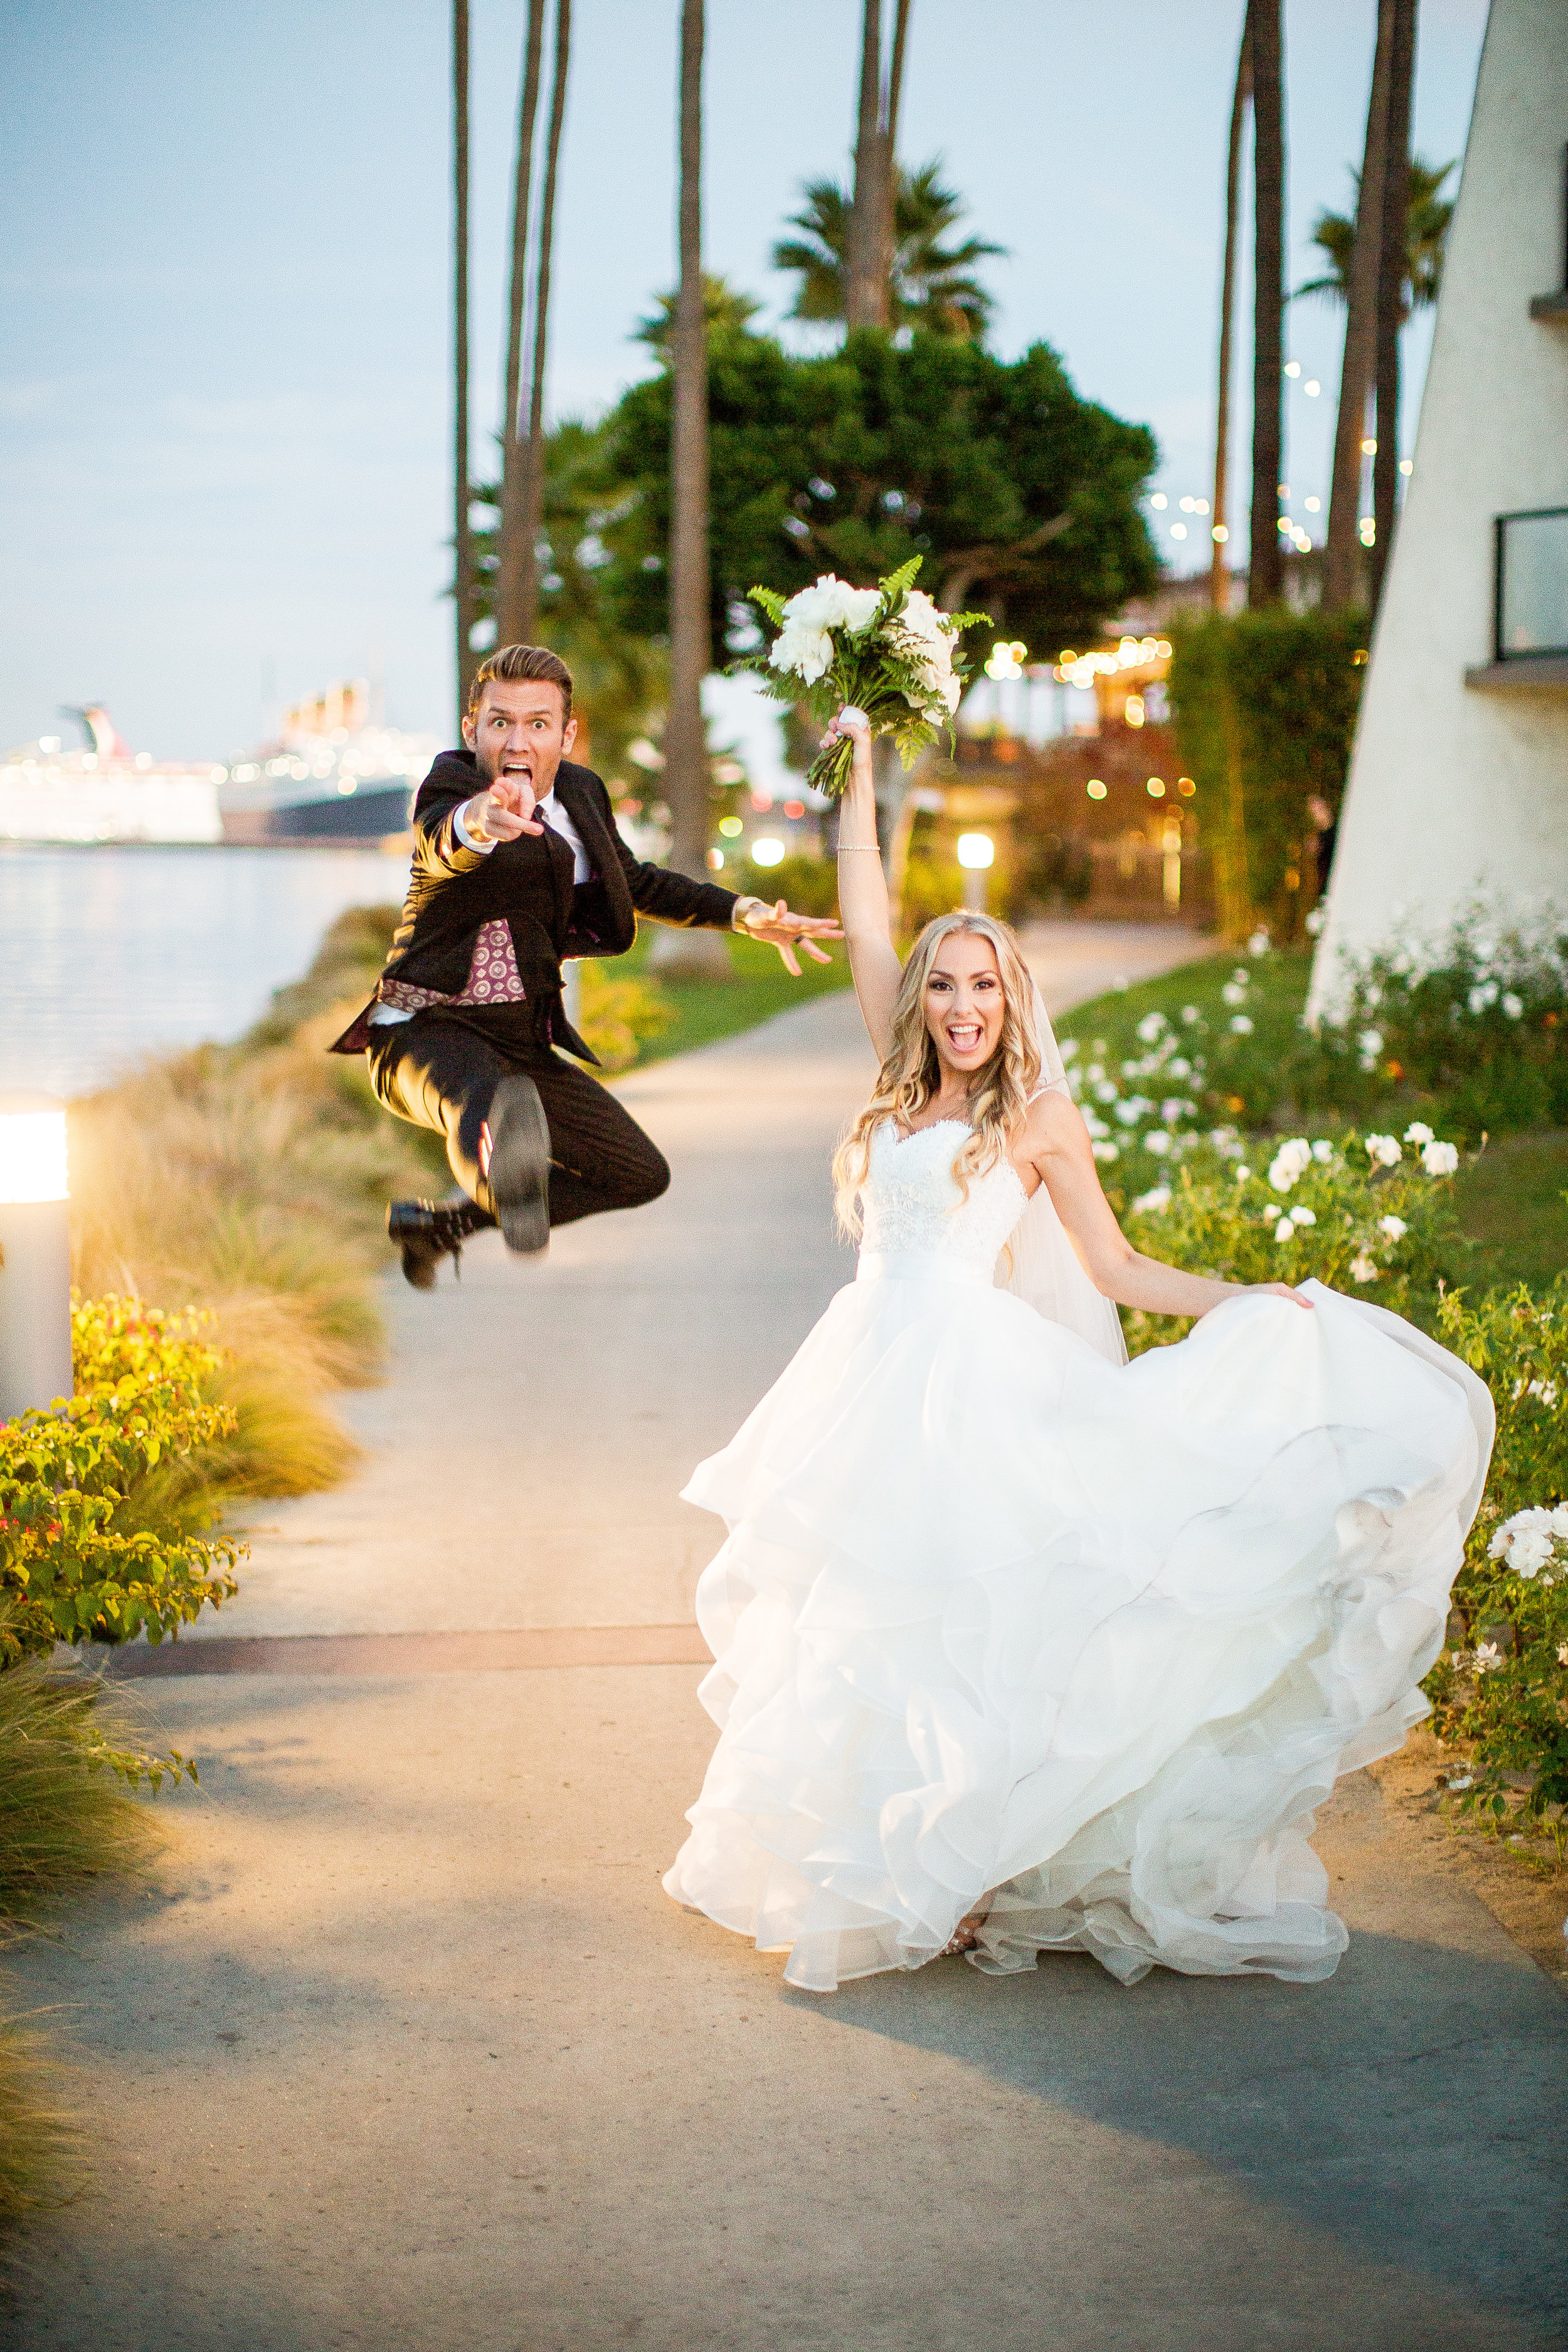 Wedding Couple Jump Photo